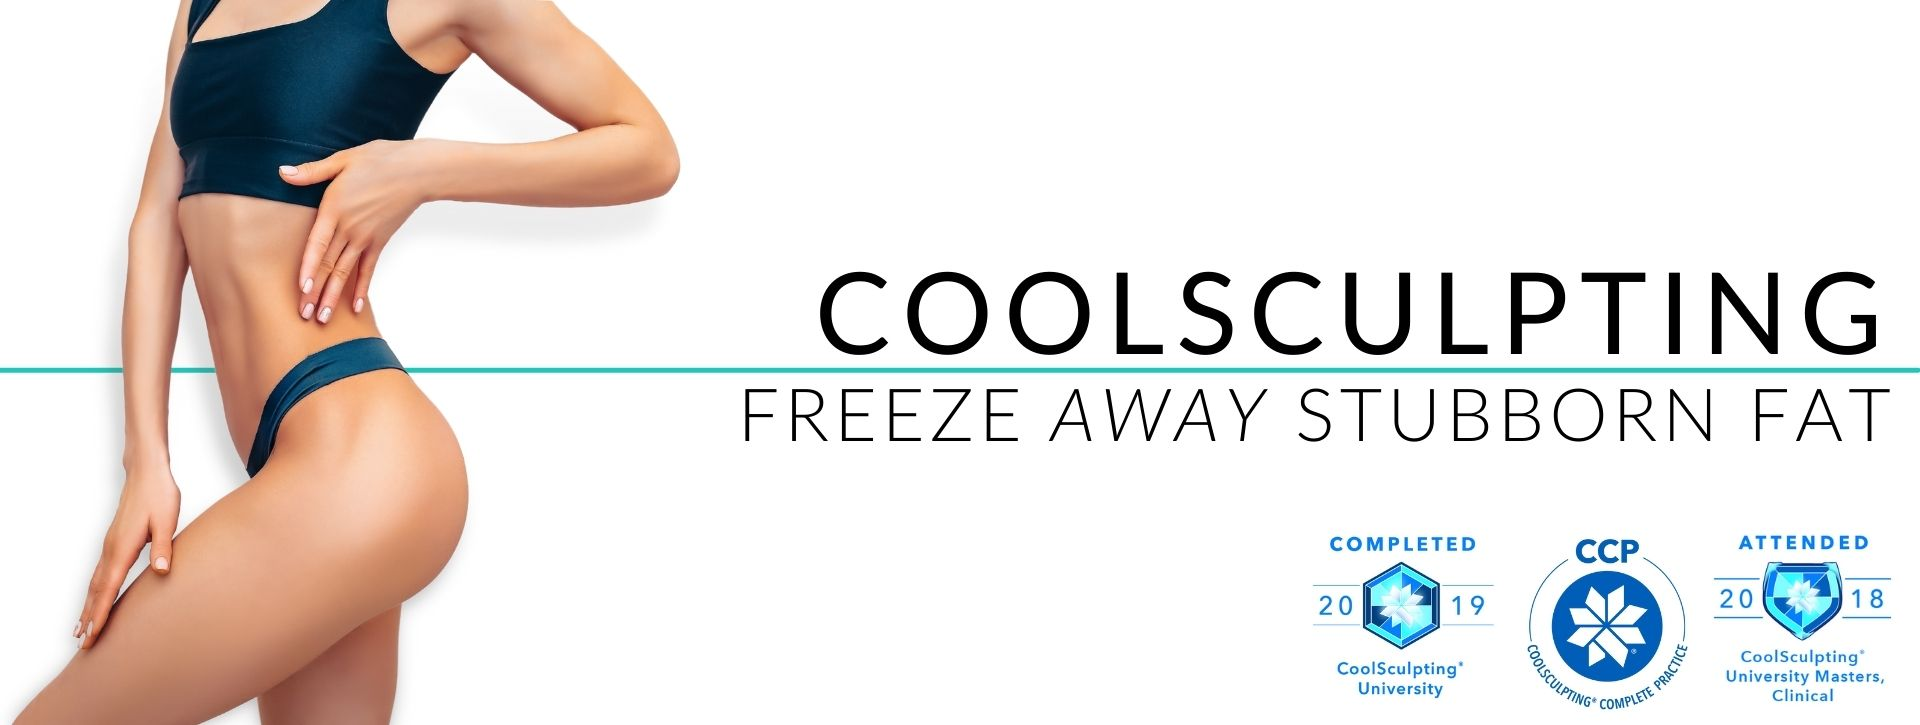 Young woman with slim belly promoting CoolSculpting treatment